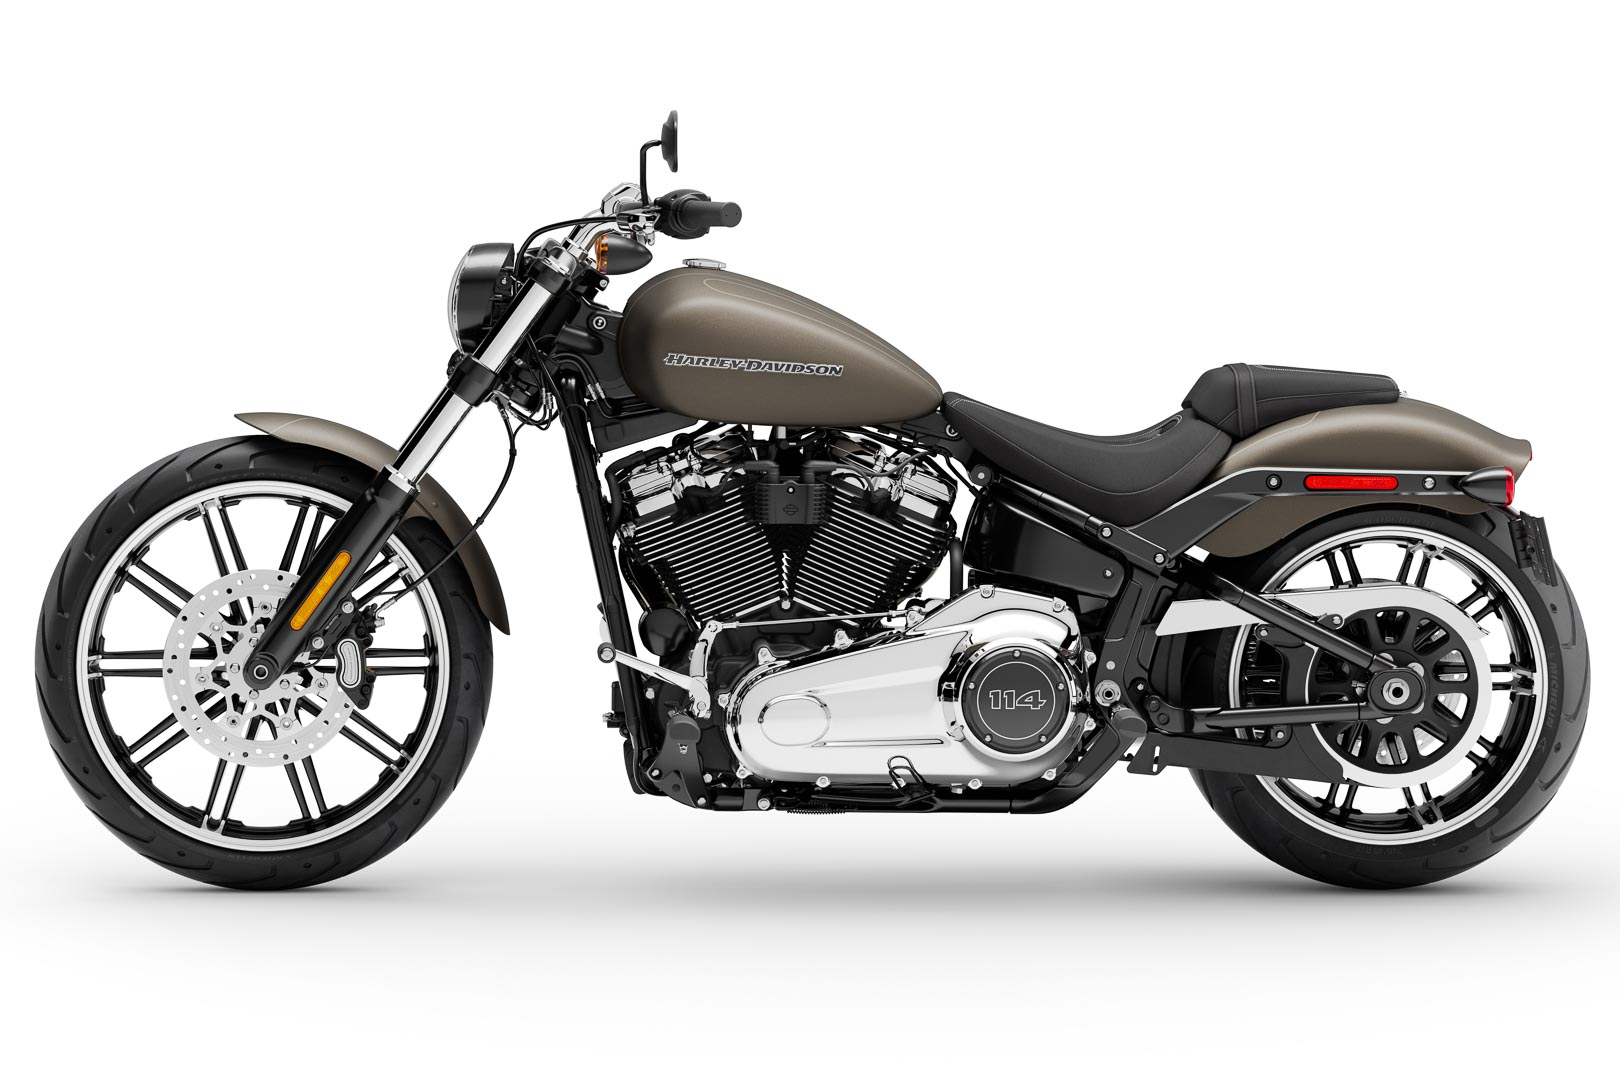 2020 Harley-Davidson Breakout 114 Buyers Guide - Price